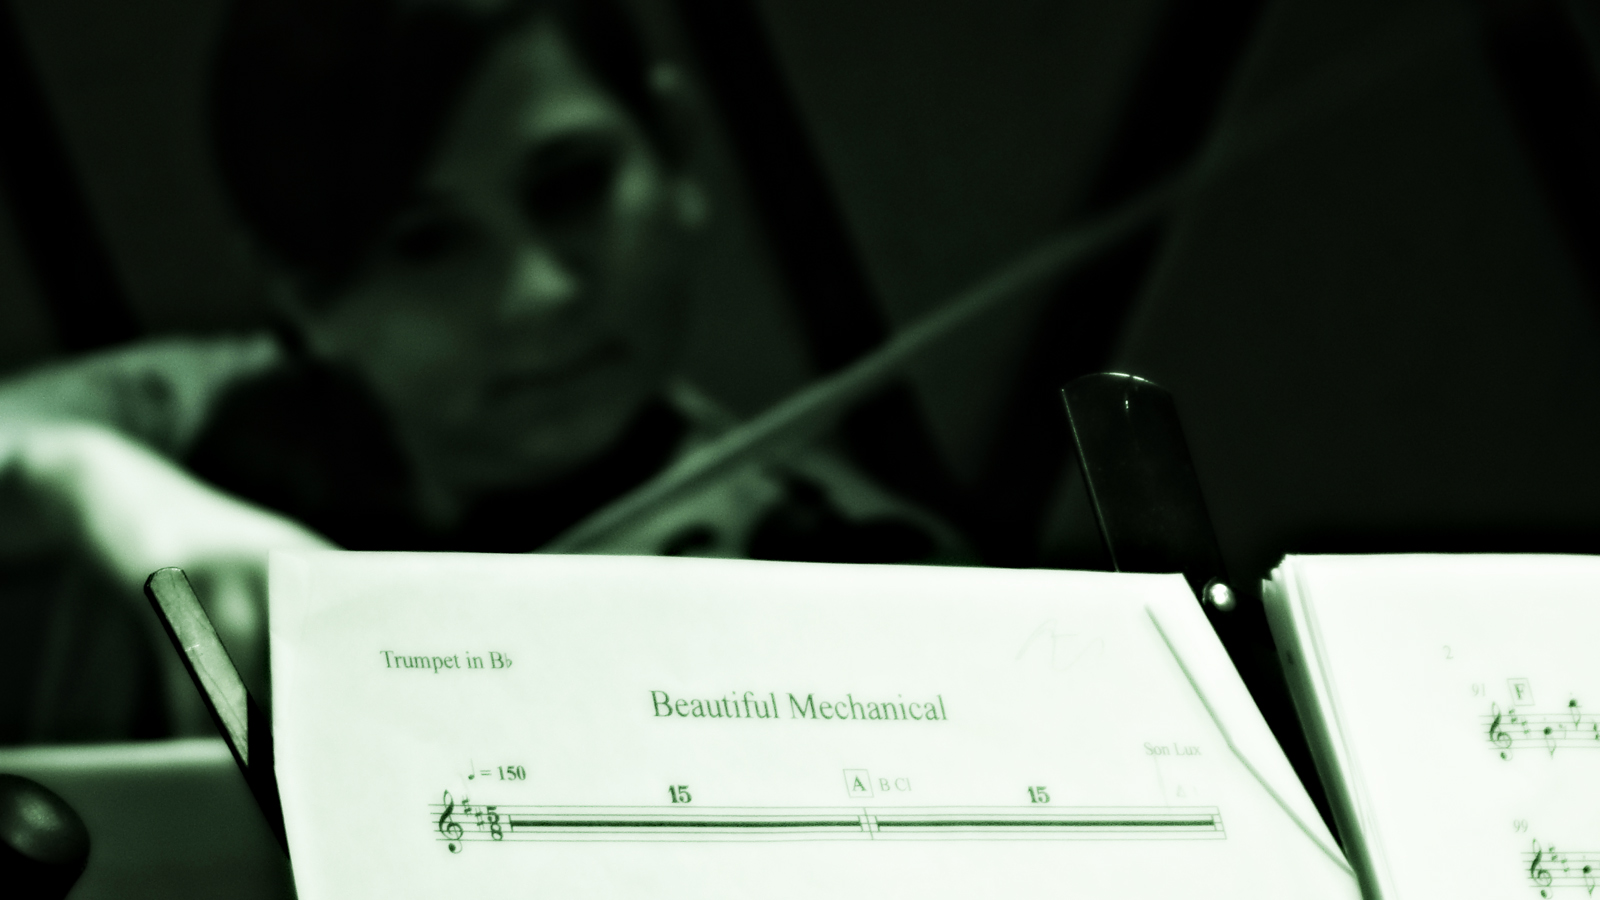 yMusic Ensemble's Nadia Sirota during the opening notes of Beatiful Mechanical. Rockwood Music Hall, NYC